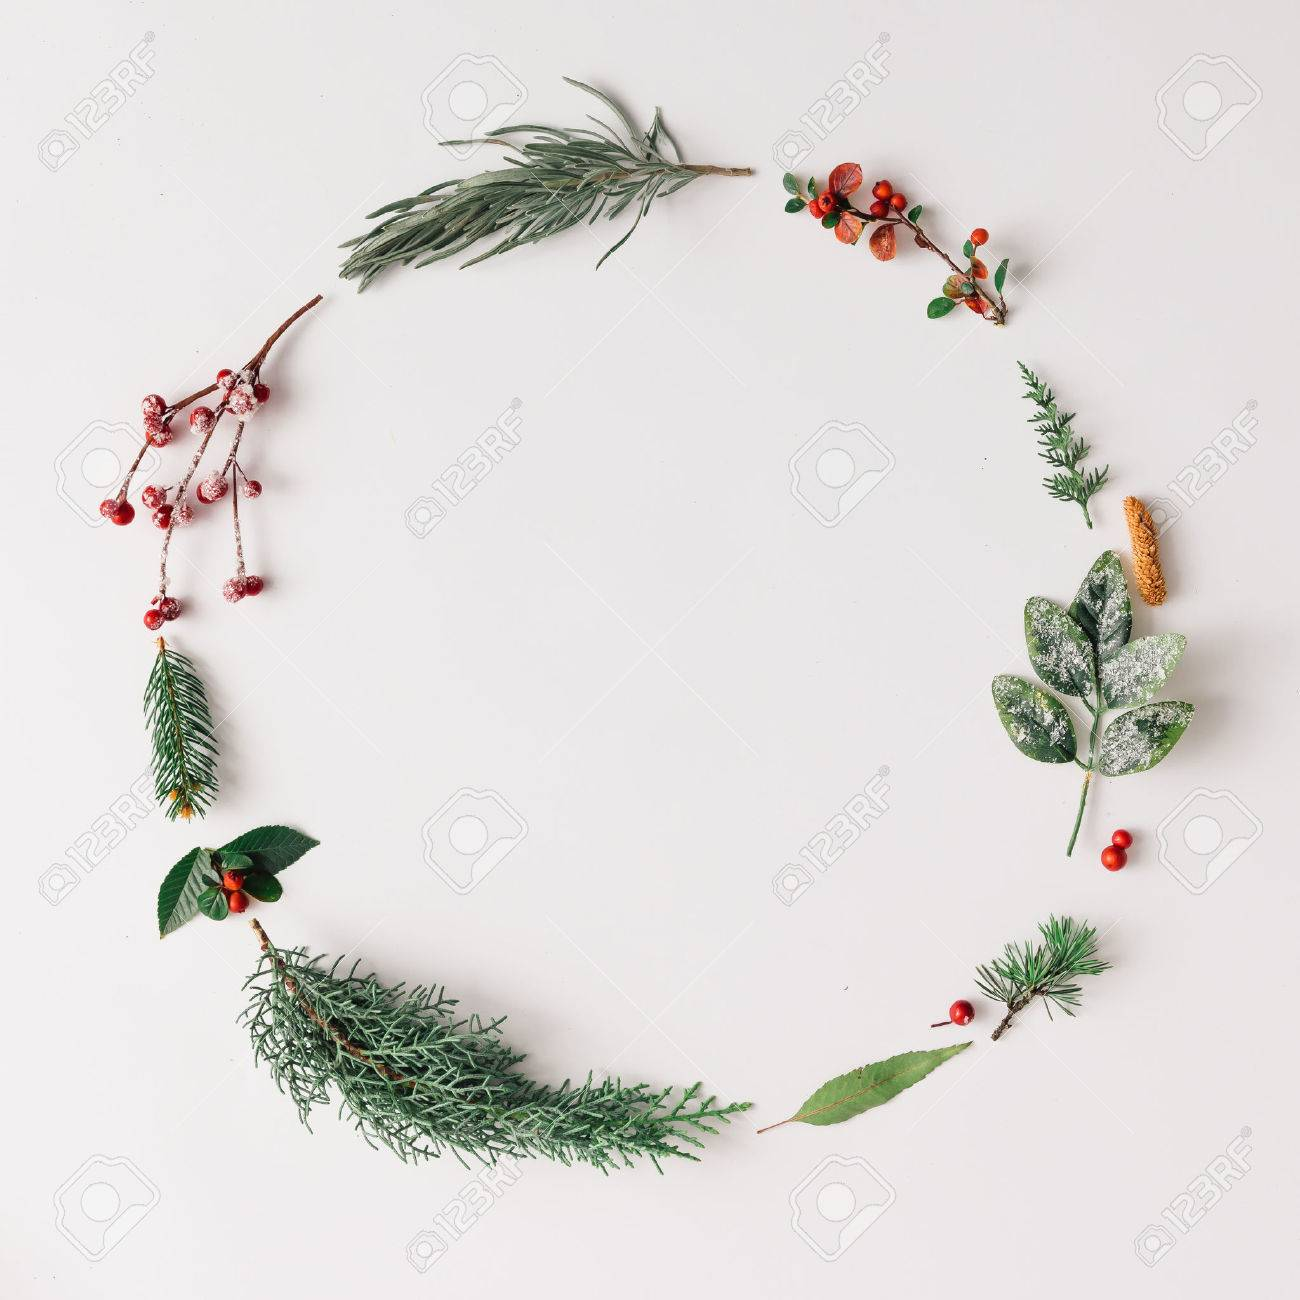 Christmas round frame made of natural winter things. Flat lay. - 70796874